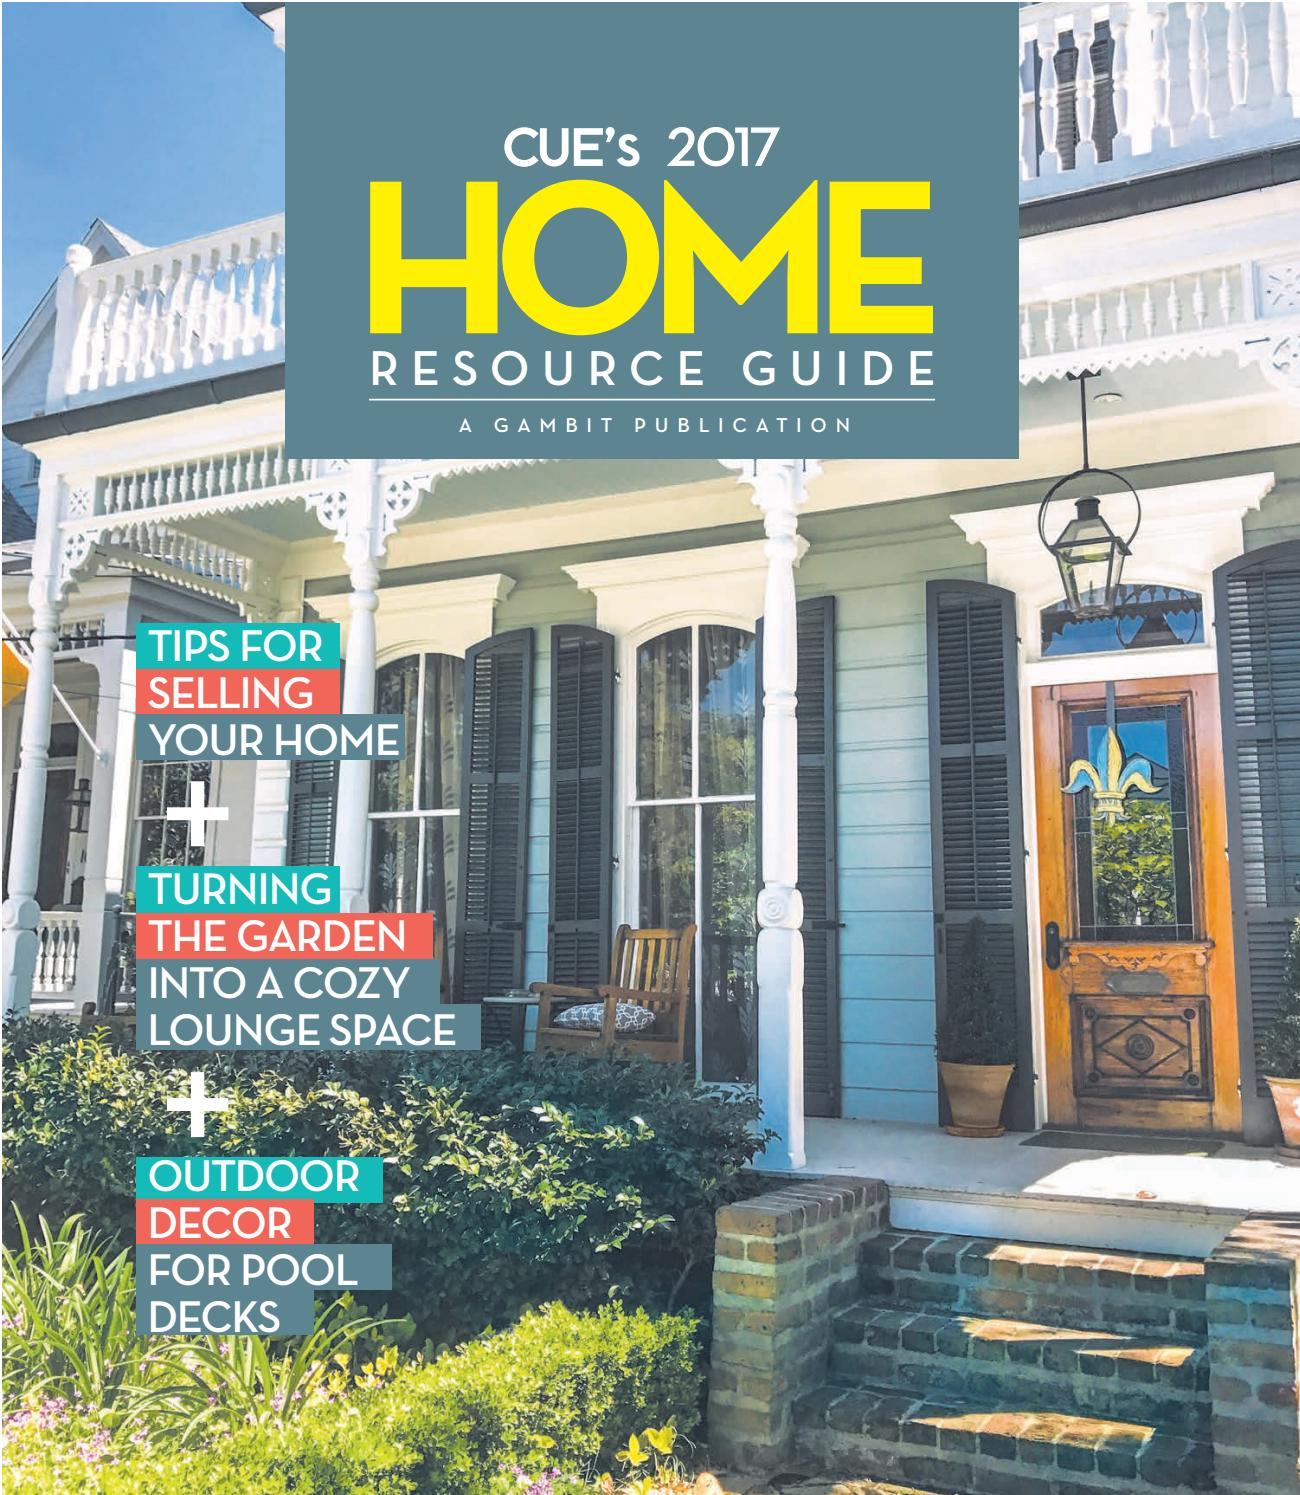 CUEs 2017 Home Resource Guide By Gambit New Orleans